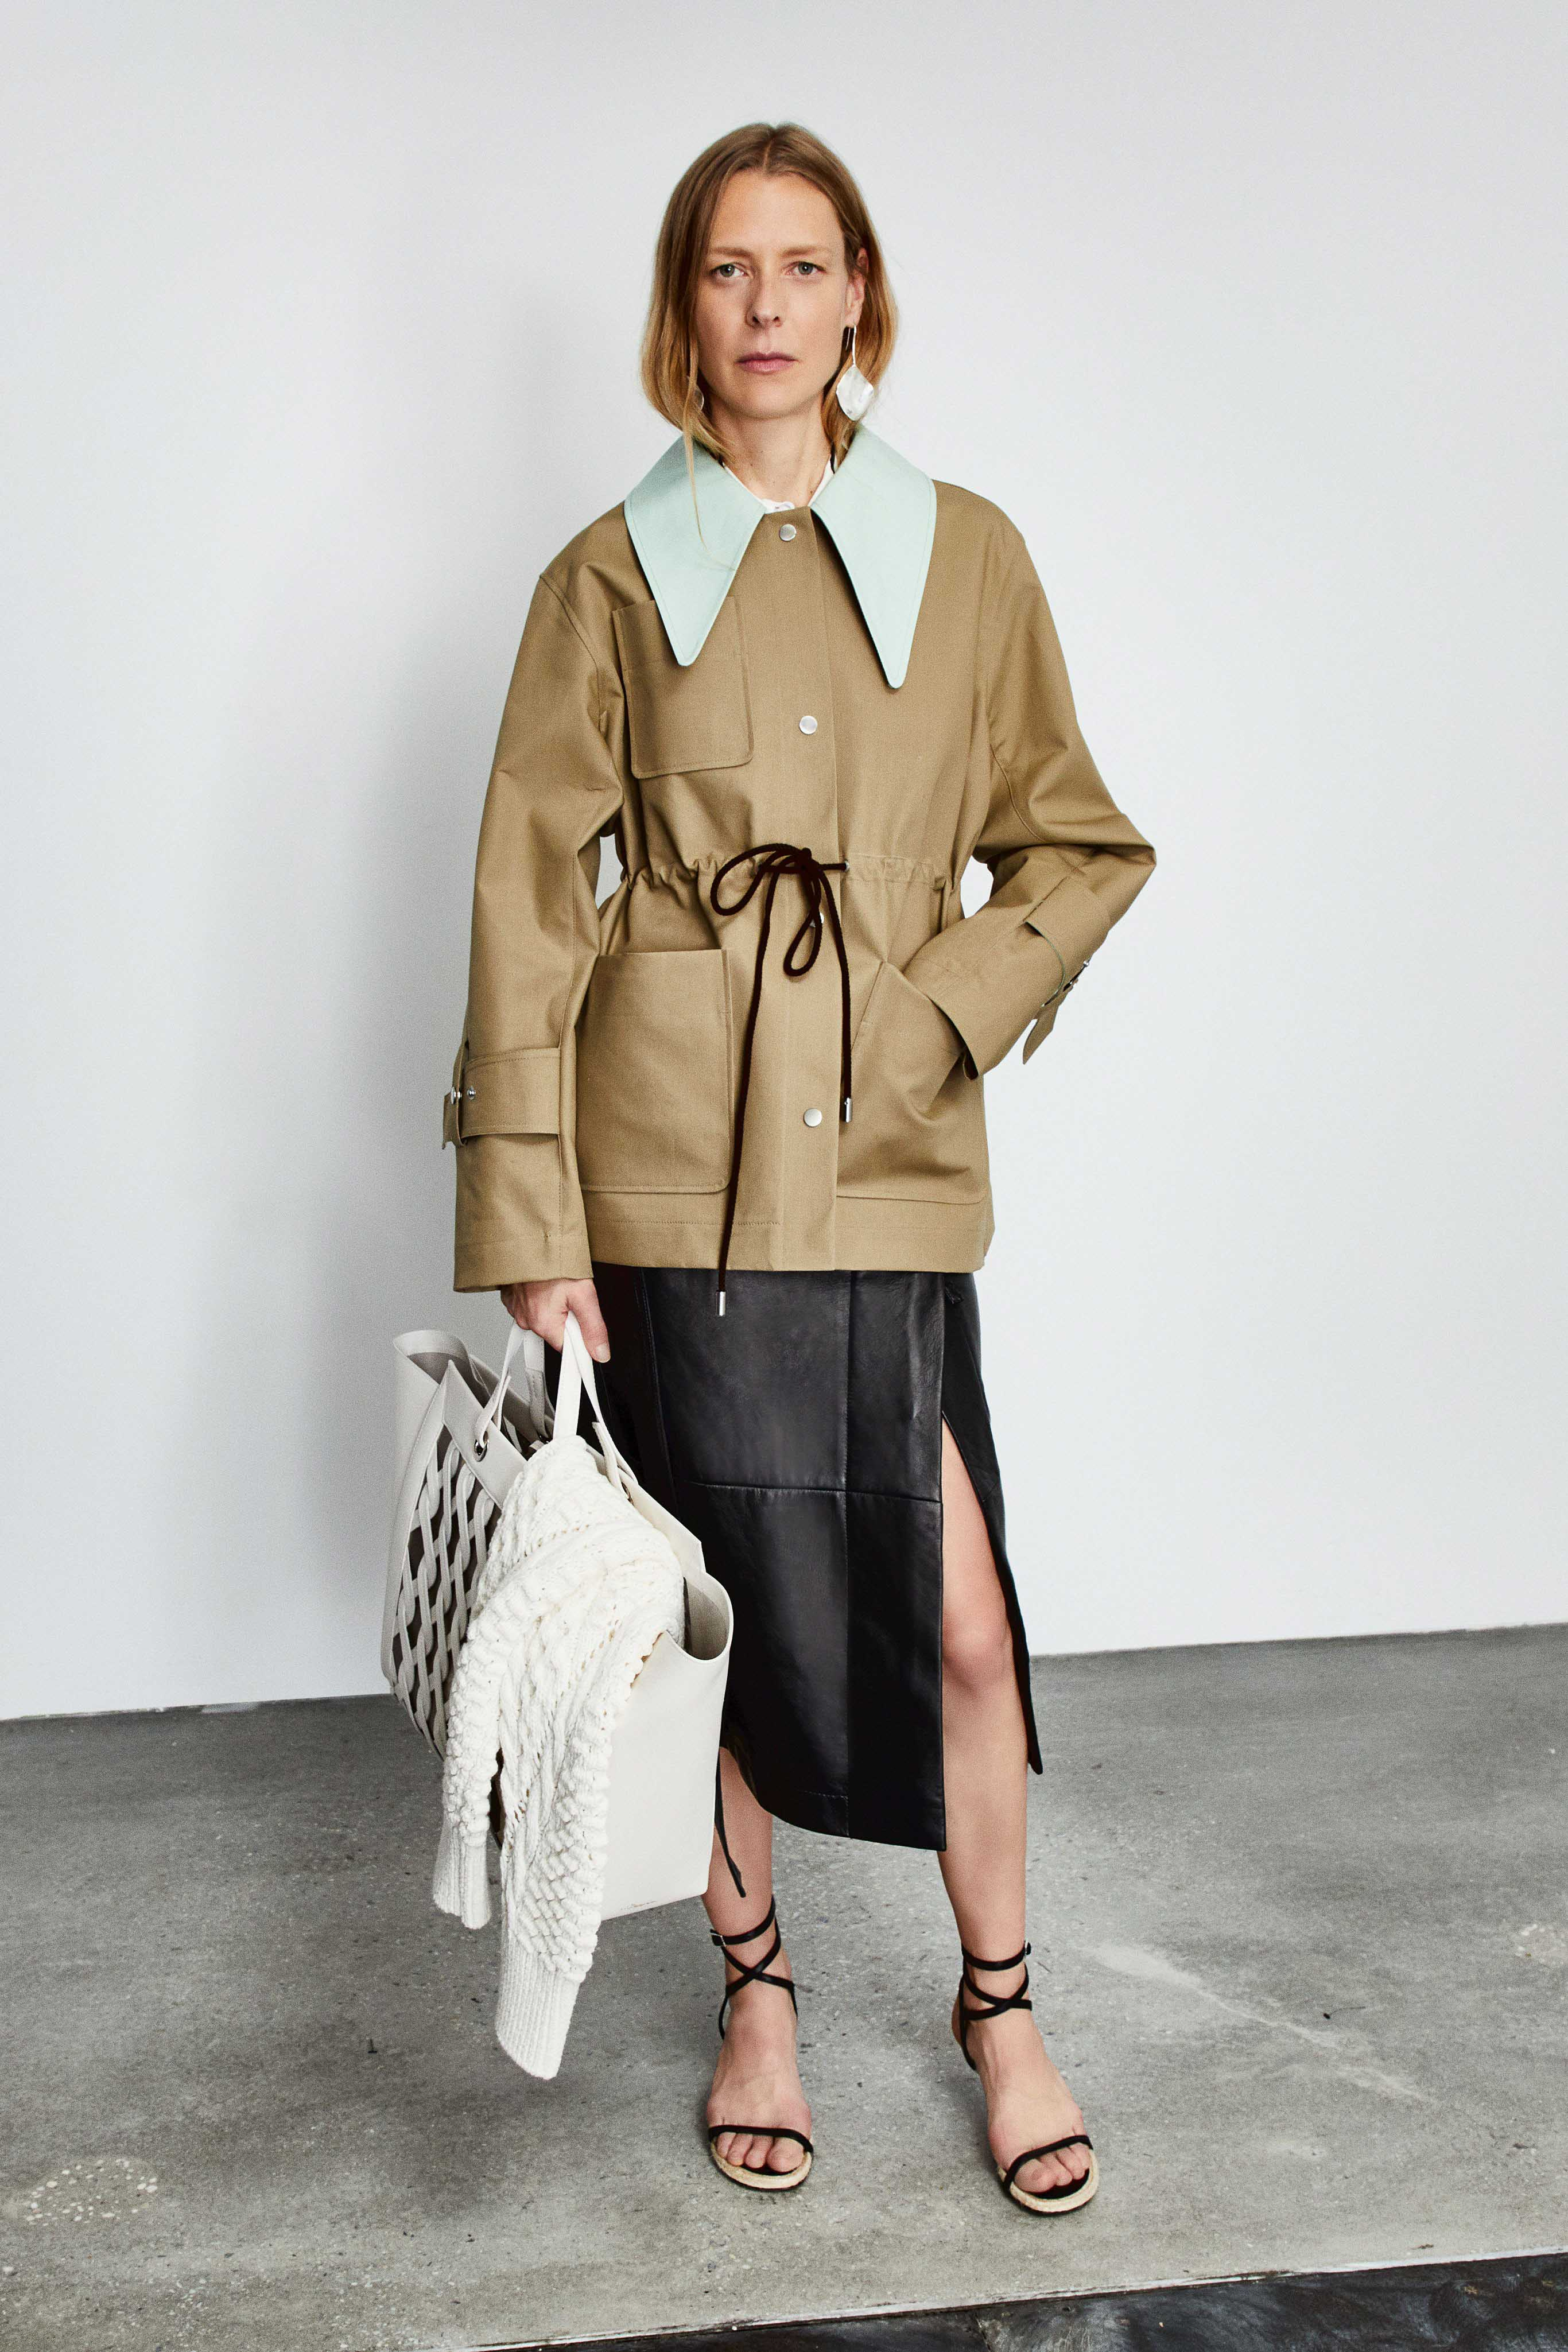 3.1 Phillip Lim Pre fall 2020 Lookbook trends runway coverage Ready To Wear Vogue skirt with slit